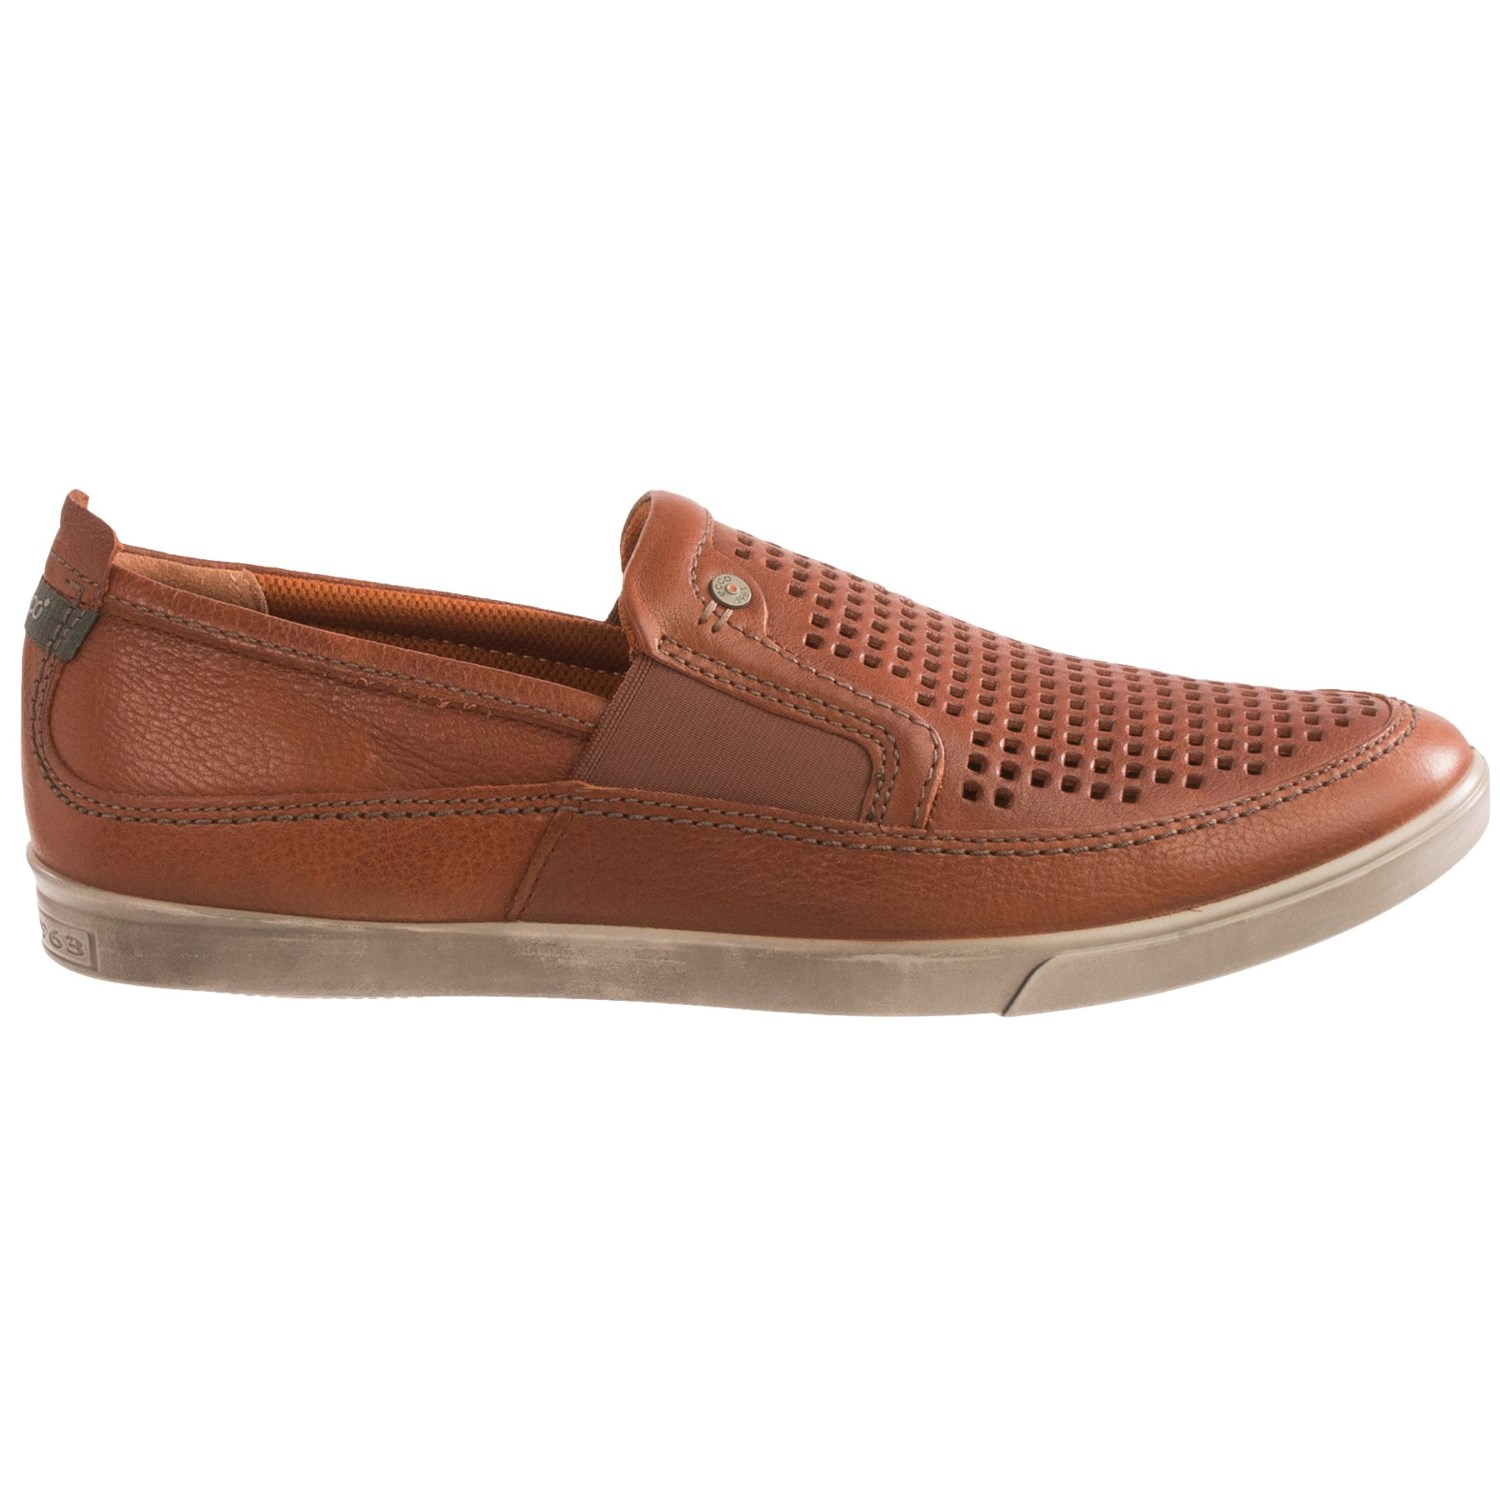 Ecco Shoes Slip On Loafers